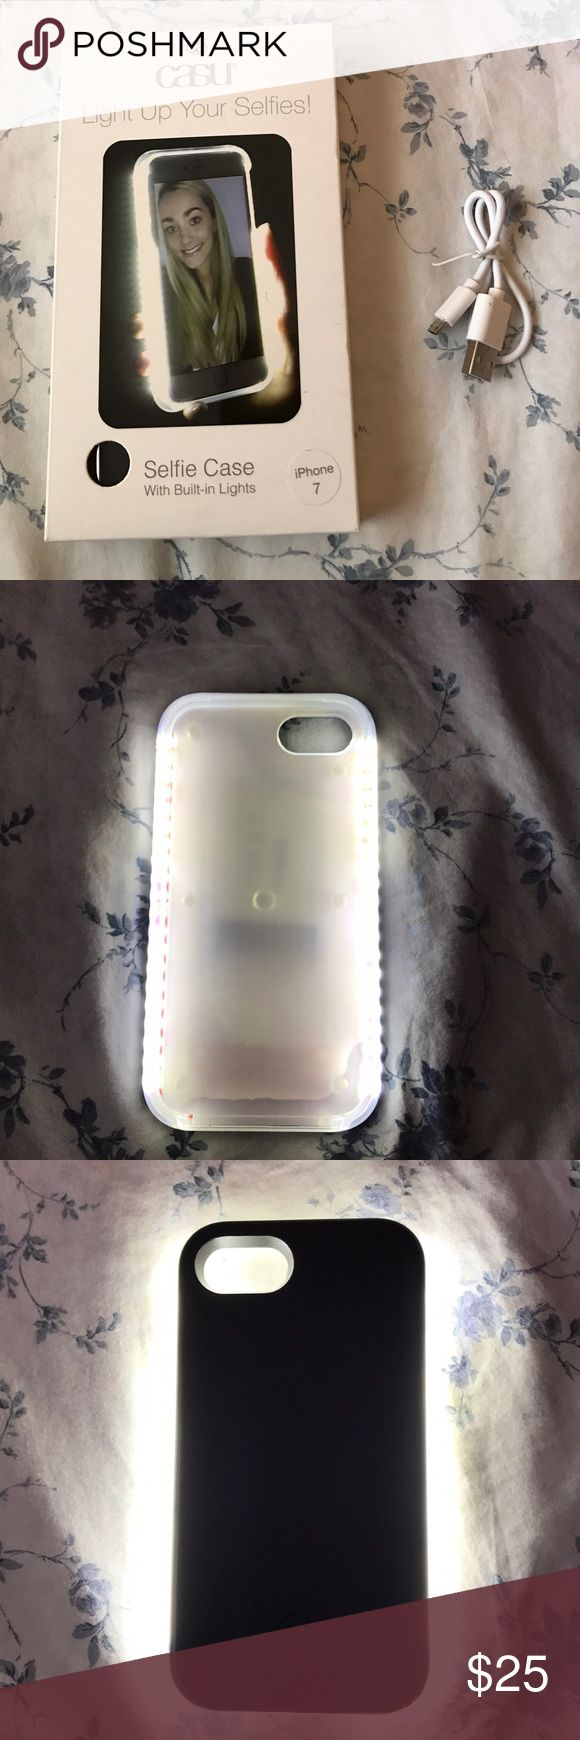 Selfie case never used! This is not just your ordinary selfie case, it is a tough and durable plastic case that will withstand drops from waist level without damage to your phone. This case usually costs around US currency $25-50 (before tax and S&H) Purchased in the UK. it shines bright like a ring light for the perfect selfie. Im selling because I upgraded to a iPhone 7 PLUS, so it doesnt fit my phone. Brand new, never used. Price firm because I'm trying to get some of my money back…